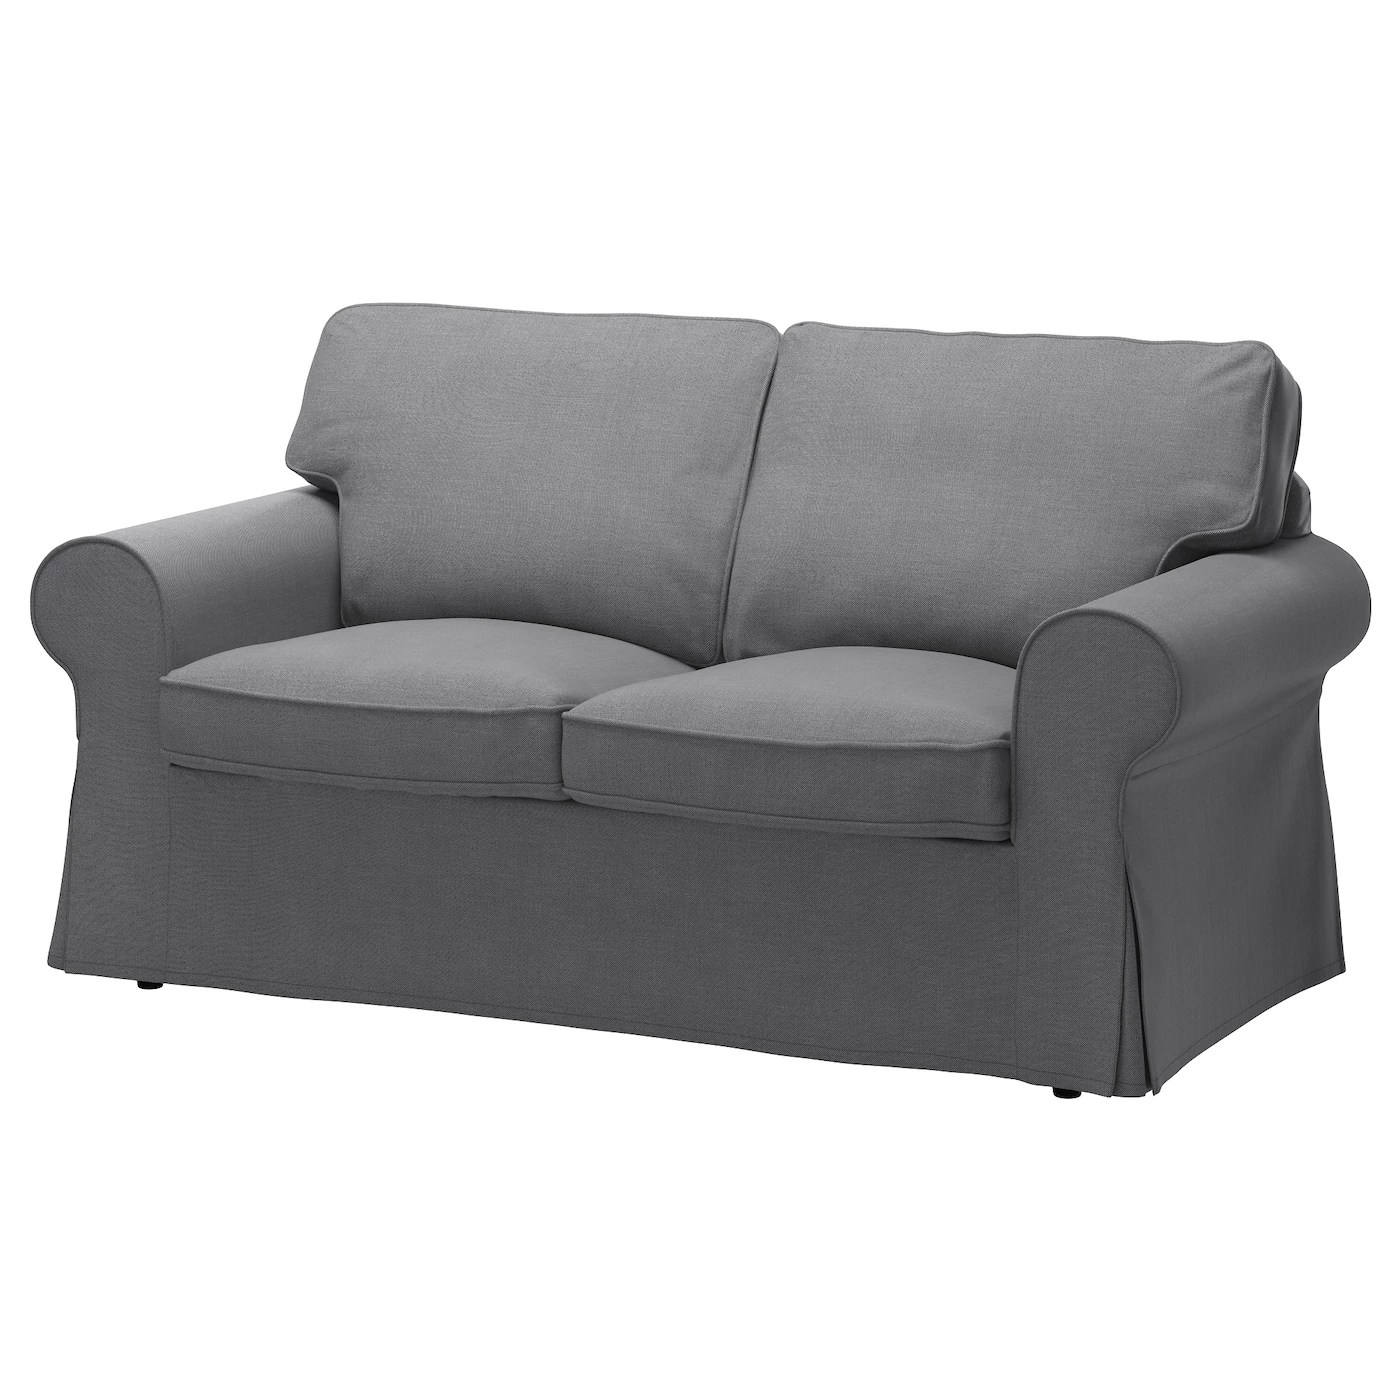 sofa bed uk under 100 how to set up fabric sofas ikea ektorp two seat 10 year guarantee read about the terms in